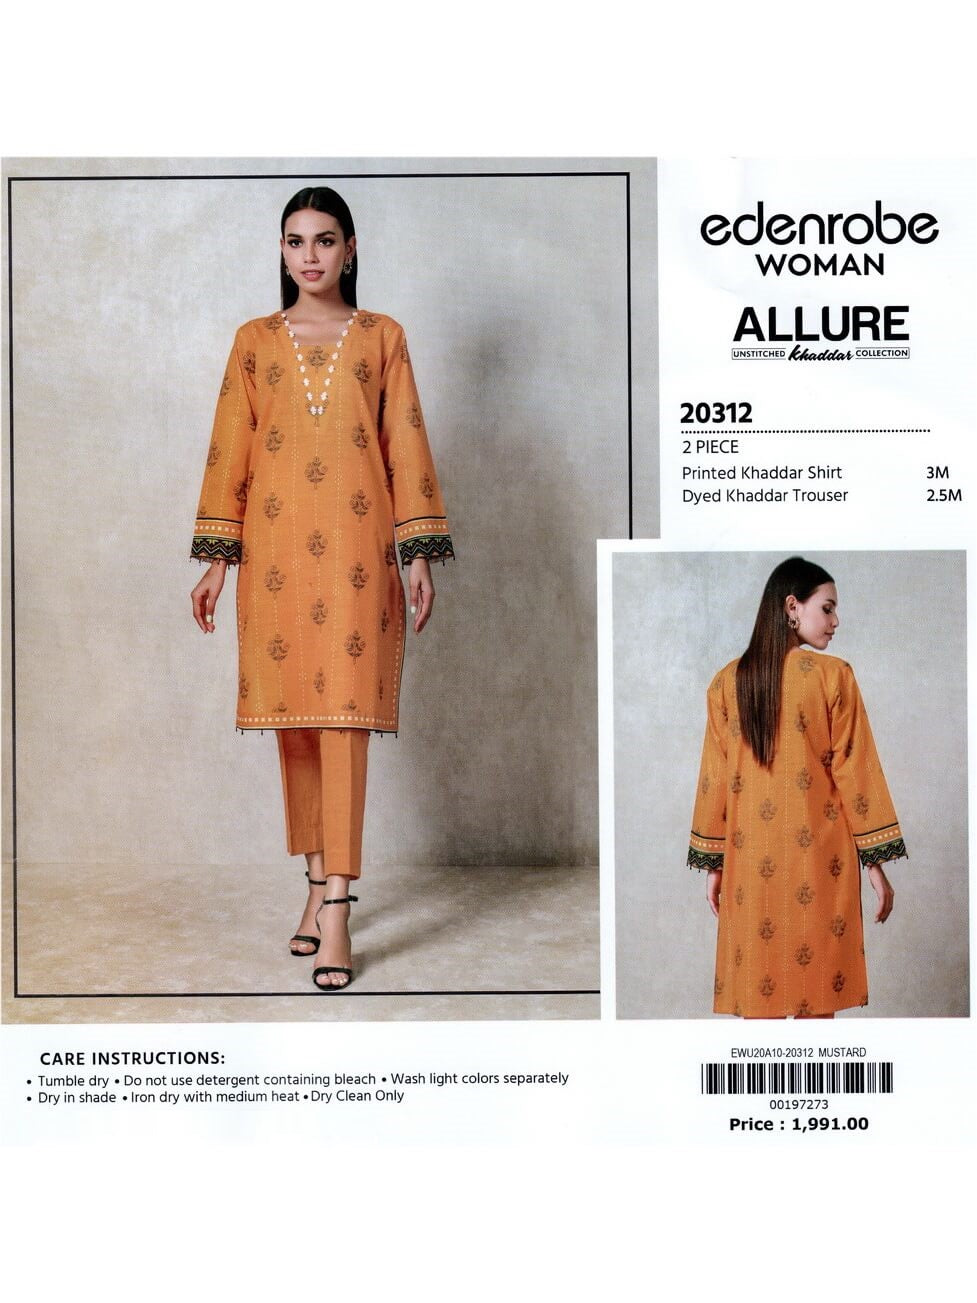 edenrobe Allure Khaddar Unstitched Printed 2pc Suit EWU20A10-20312